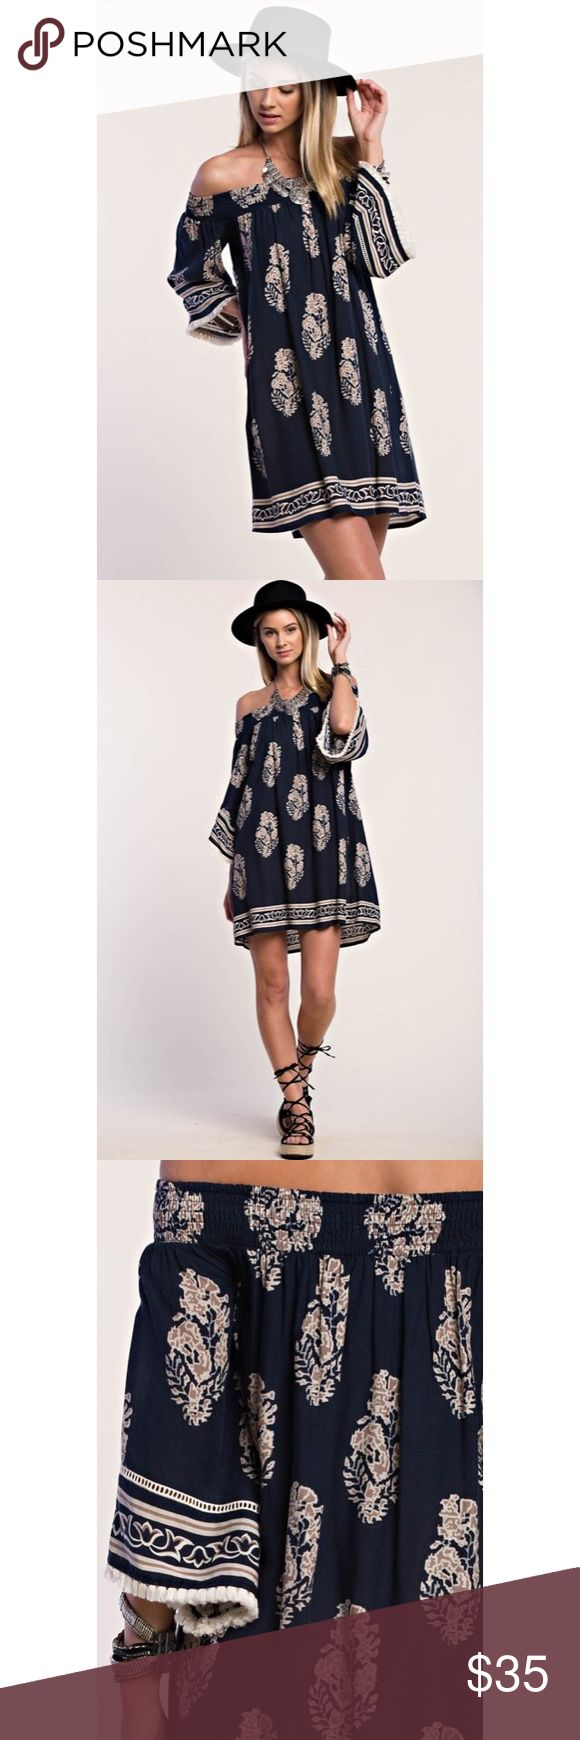 """RESTOCKED!!! Boho Navy Off Shoulder Dress Boho Beauty Off-Shoulder Dress  Navy with floral/leaf pattern Off shoulder loose fitting silhouette Bell sleeves with cream colored tassels 100% Rayon Length is approx 29"""" (measured flat) Flattering for many body types Perfect for festival season!  Price firm unless bundled Top rated seller Fast shipping No trades Boutique Dresses"""